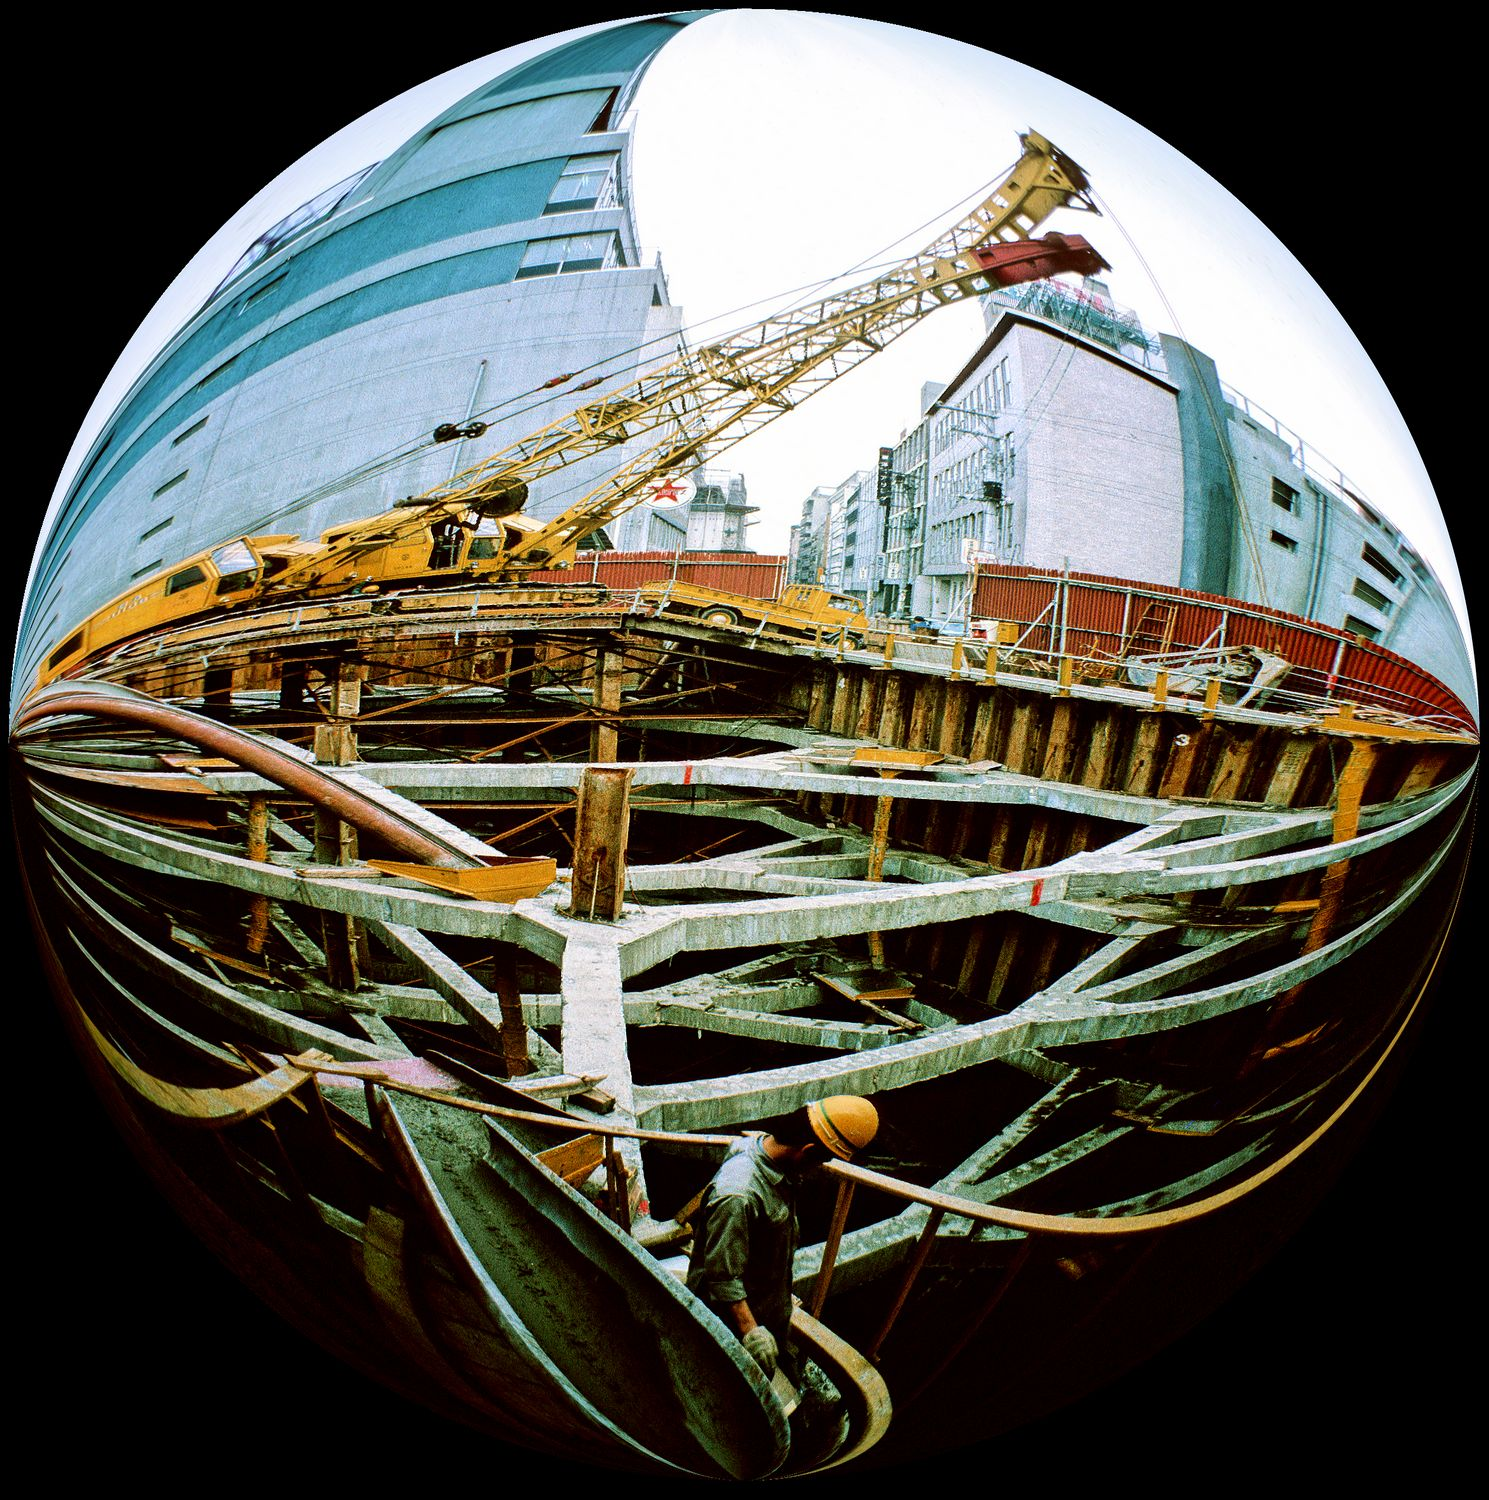 - The building bubble in Tokyo  - Bubble Pictures - made with Wilkington-Smythe